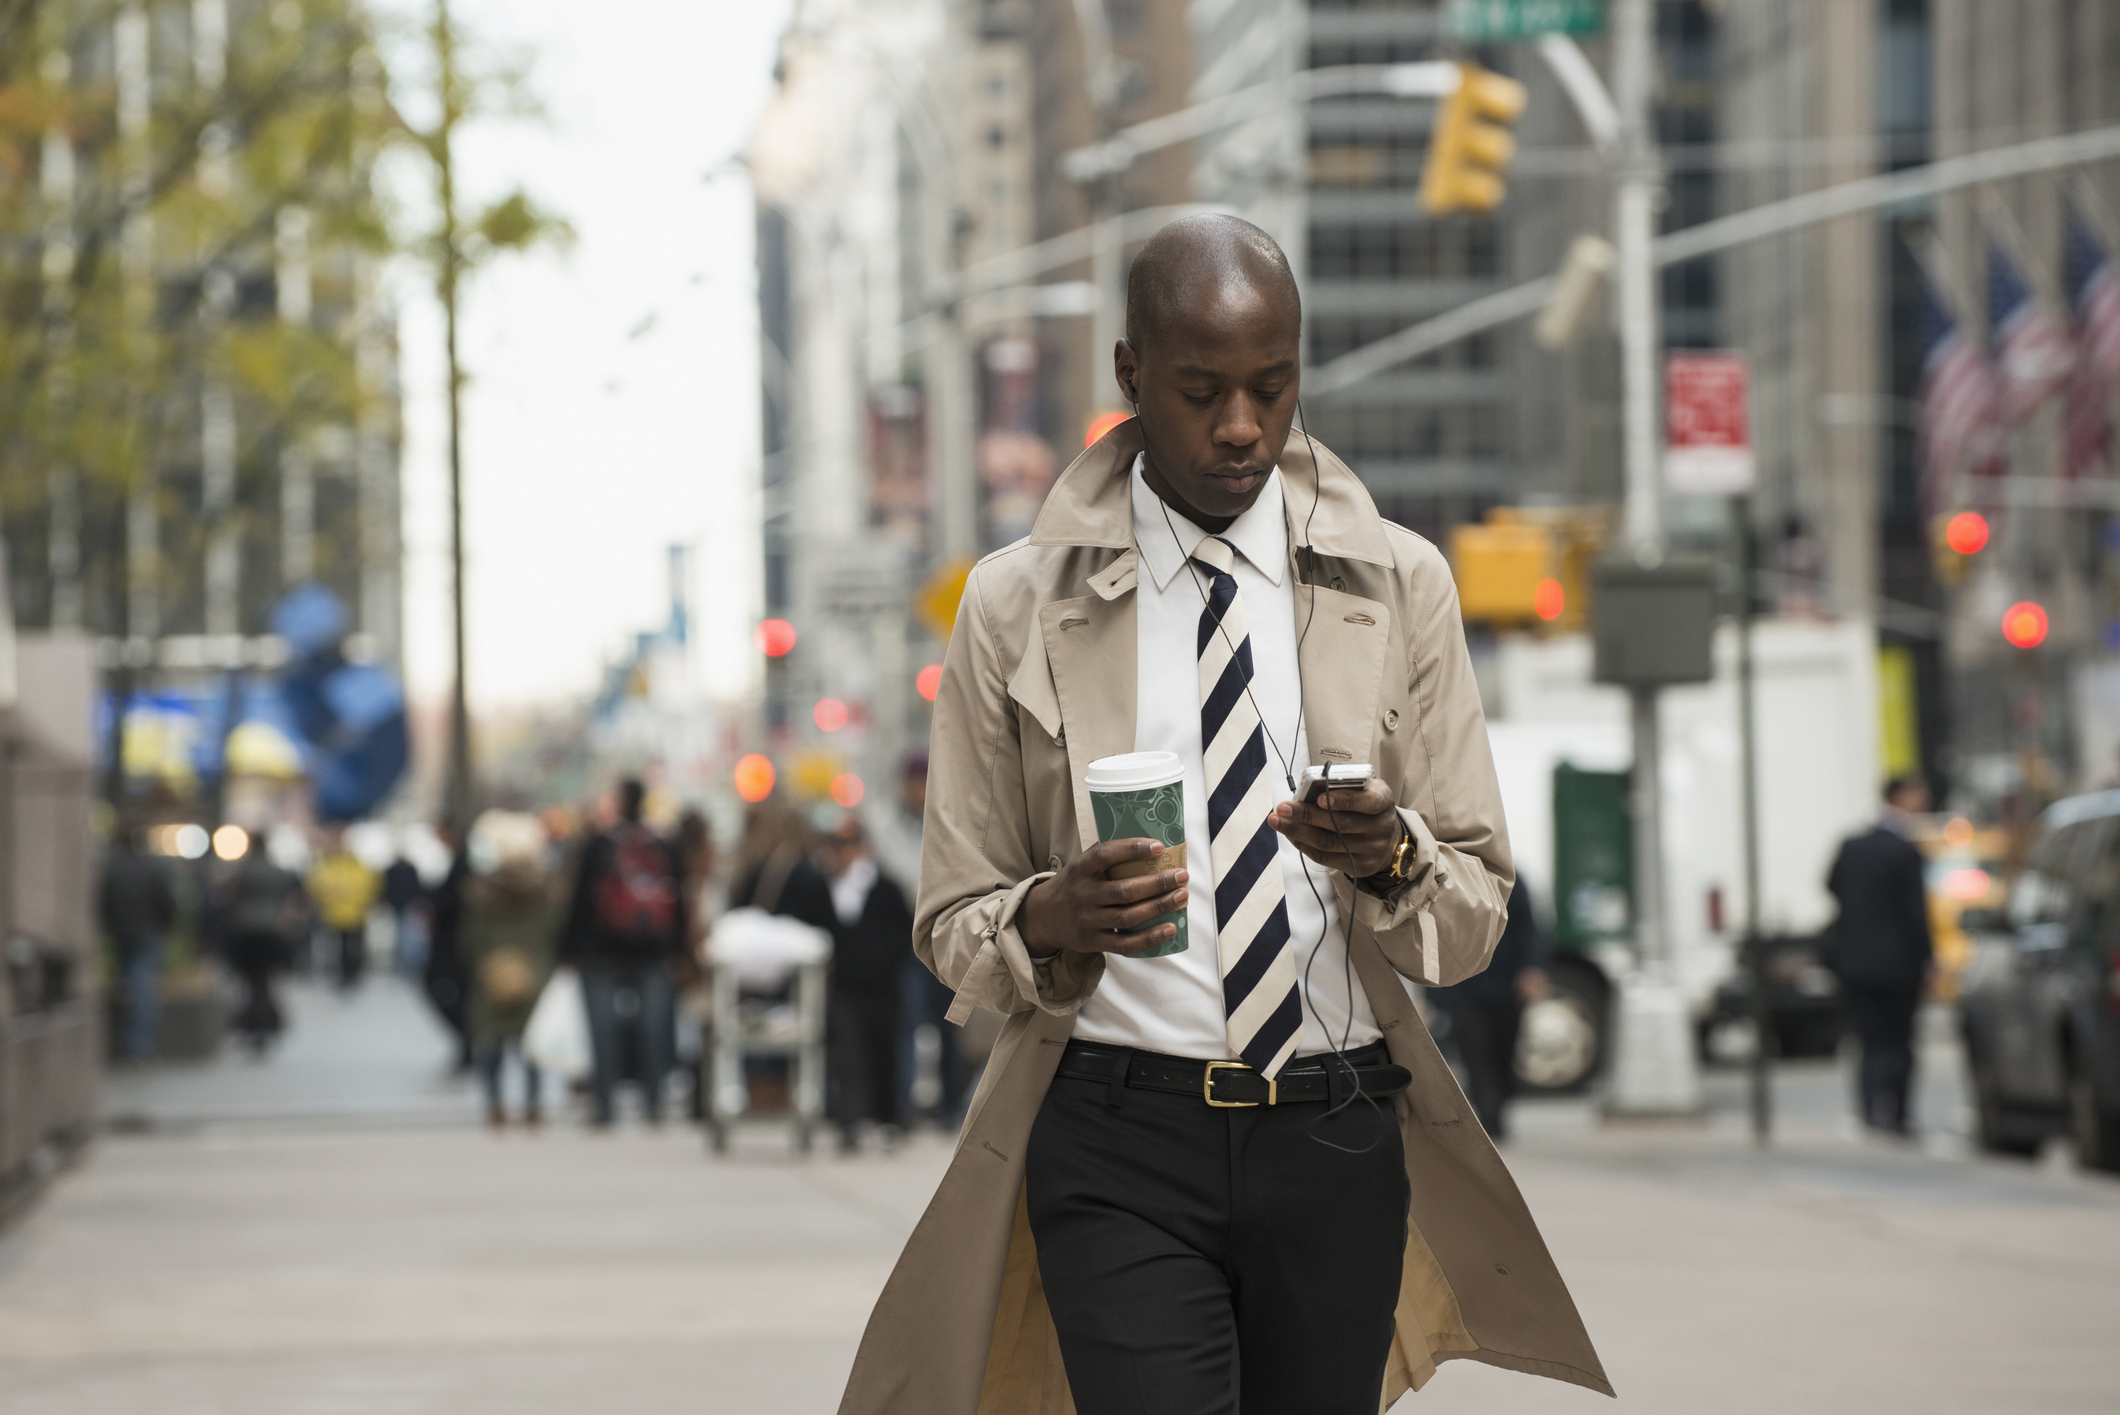 Black businessman using cell phone on city street